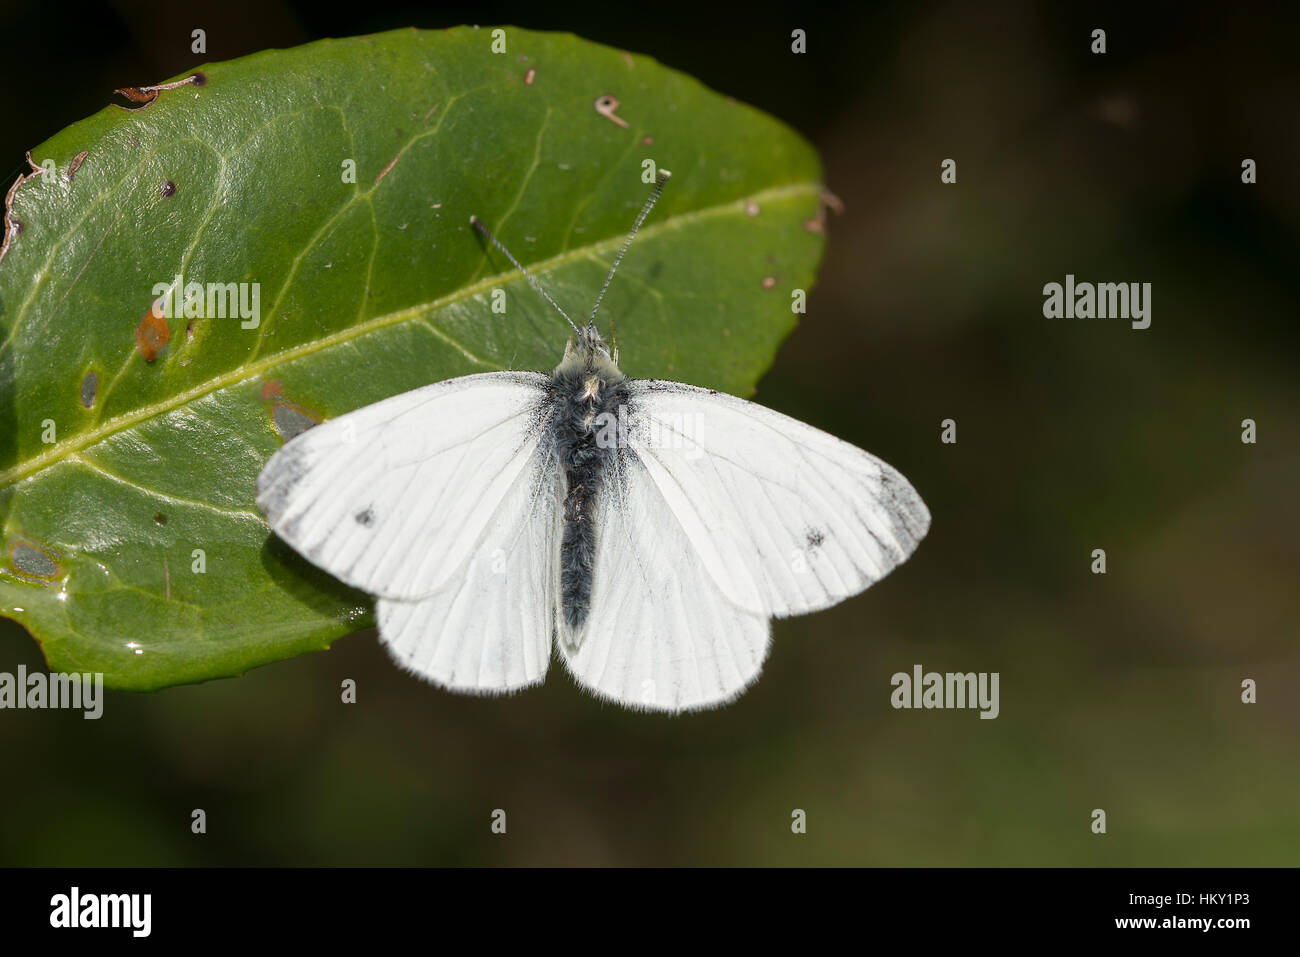 Green-veined white butterfly, Pieris napi, basking on leaf with wings open - Stock Image